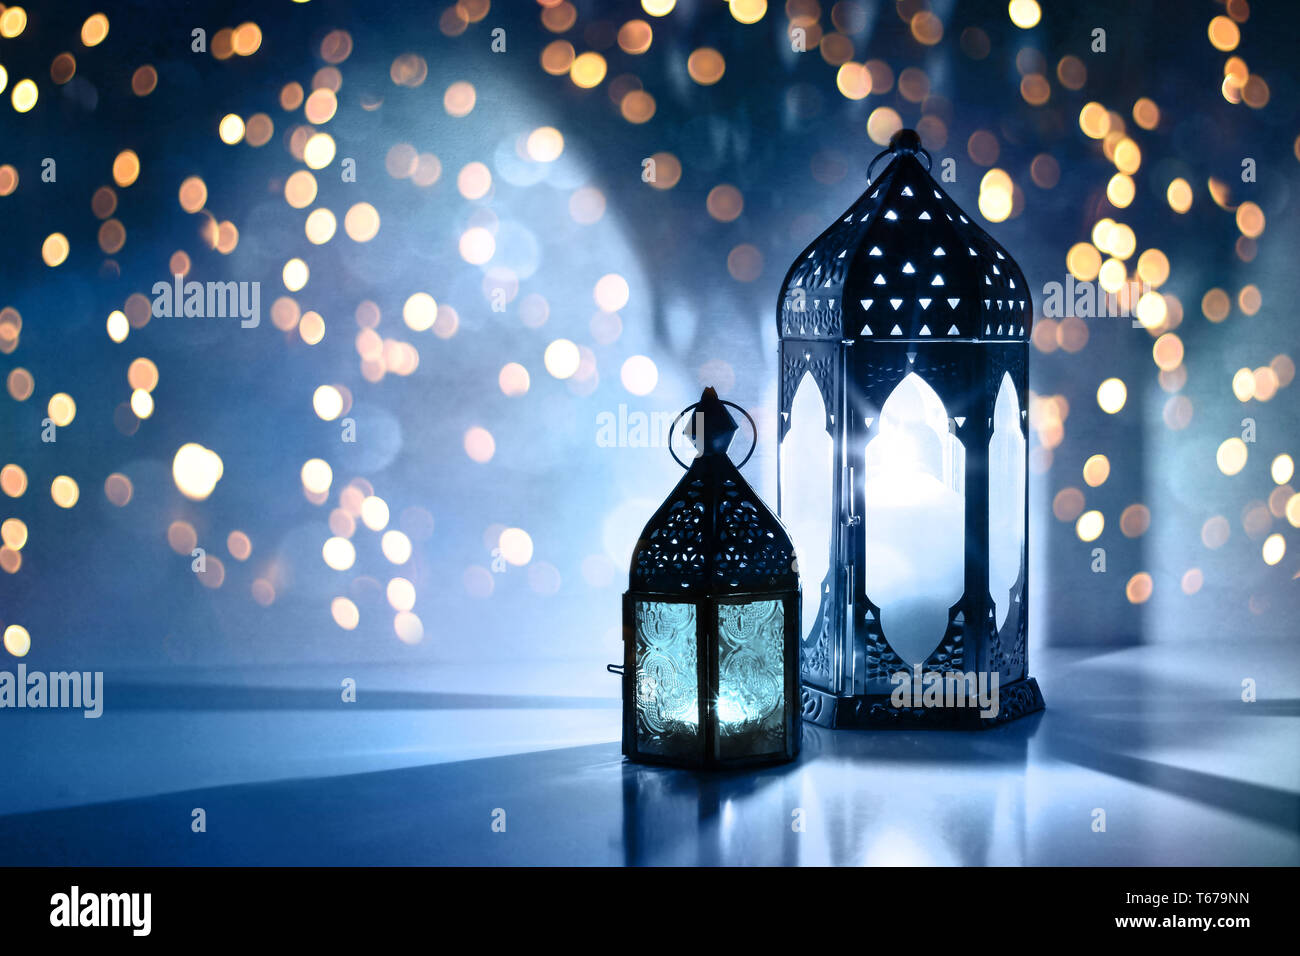 Couple of glowing Moroccan ornamental lanterns on the table. Greeting card, invitation for Muslim holy month Ramadan Kareem. Festive blue night - Stock Image